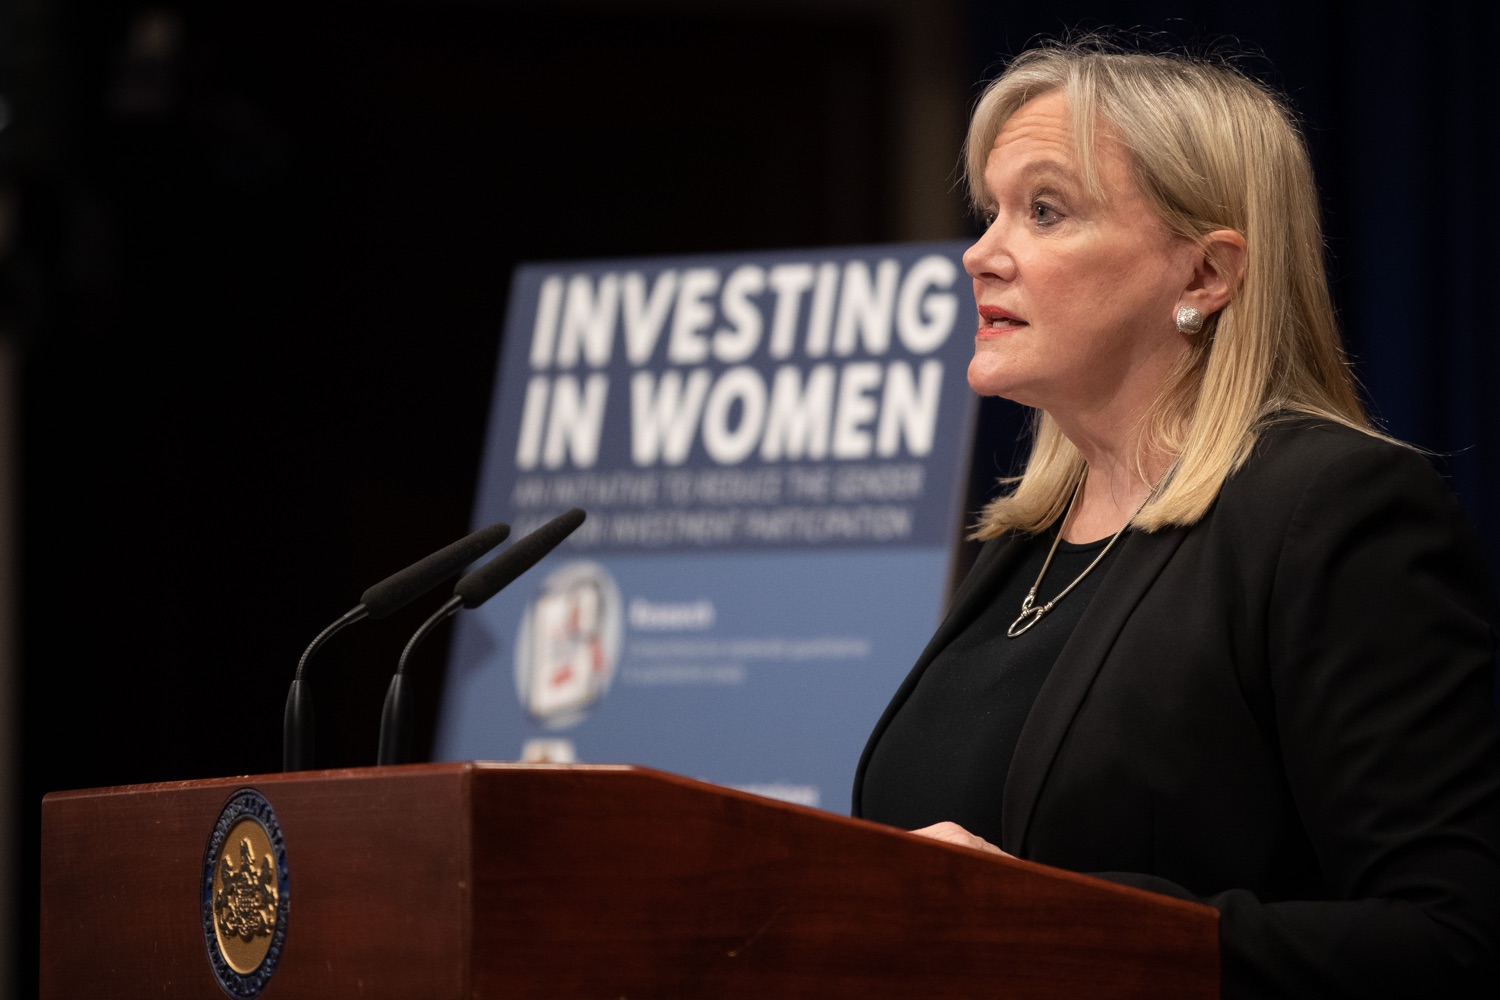 "<a href=""https://filesource.wostreaming.net/commonwealthofpa/photo/17725_dobs_investingwomen_dz_001.jpg"" target=""_blank"">⇣ Download Photo<br></a>Department of Banking and Securities Secretary Robin L. Wiessmann speaking at the announcement in the Capitol Media Center. Pennsylvania Department of Banking and Securities Secretary Robin L. Wiessmann today announced Investing in Women, an initiative aimed at providing women with important information about banking, credit, saving and investing, while offering practical resources to navigate their finances. The secretary was joined at a Capitol news conference by .Julie Bancroft, Chief Public Affairs Officer of the Pennsylvania Coalition Against Domestic Violence (PCADV).  .Harrisburg, PA - January 15, 2020."